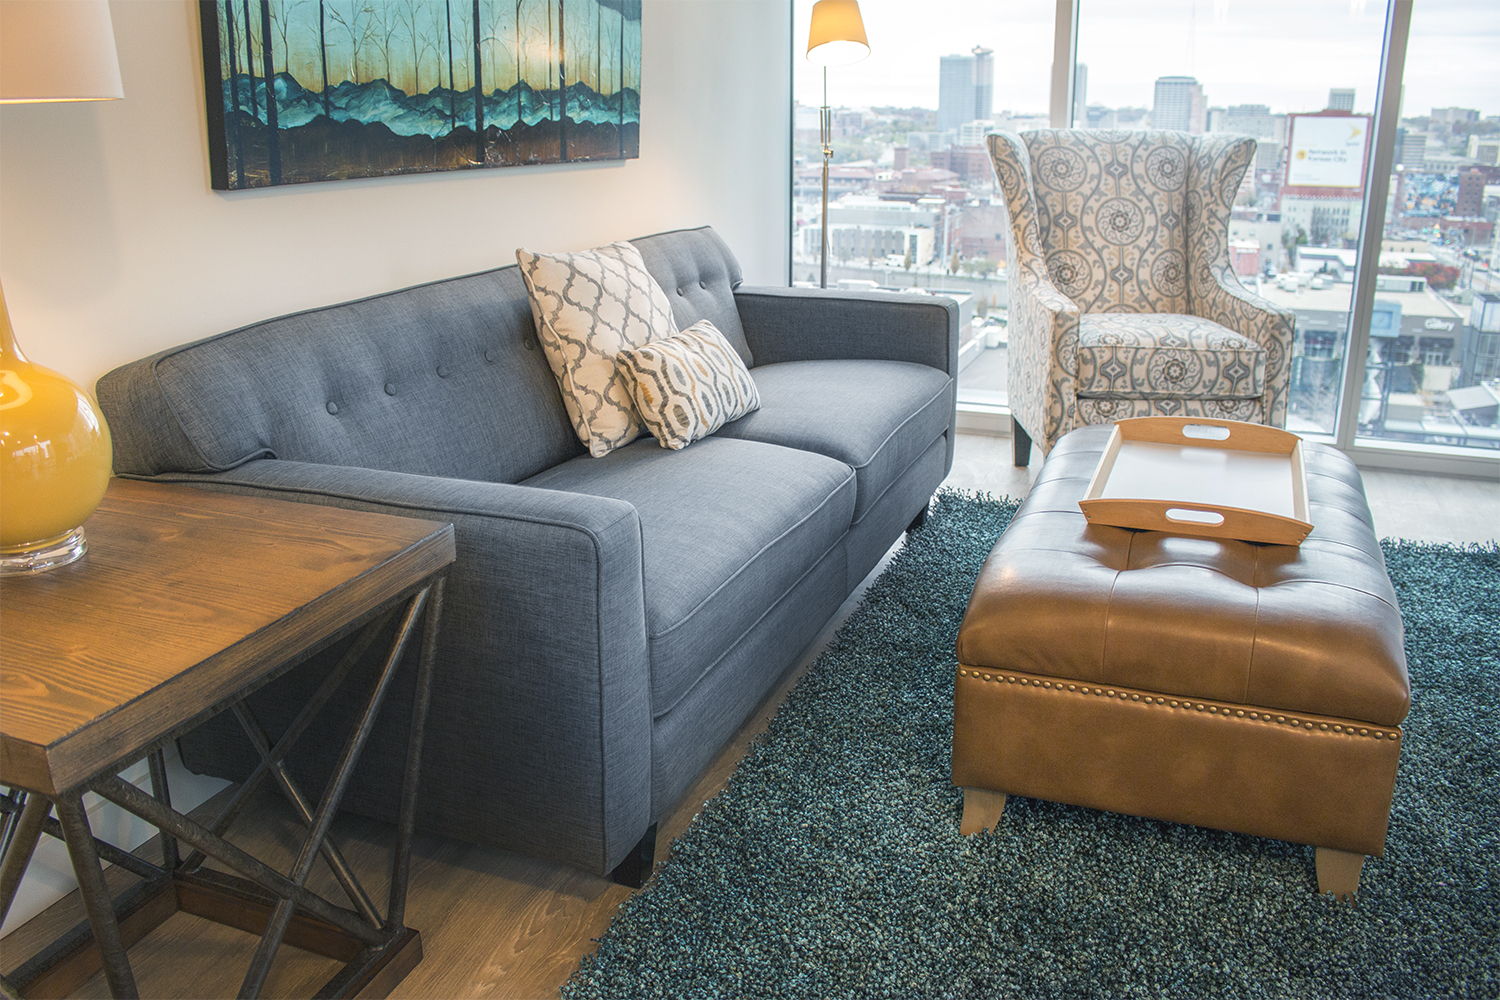 Complete Furniture Packages